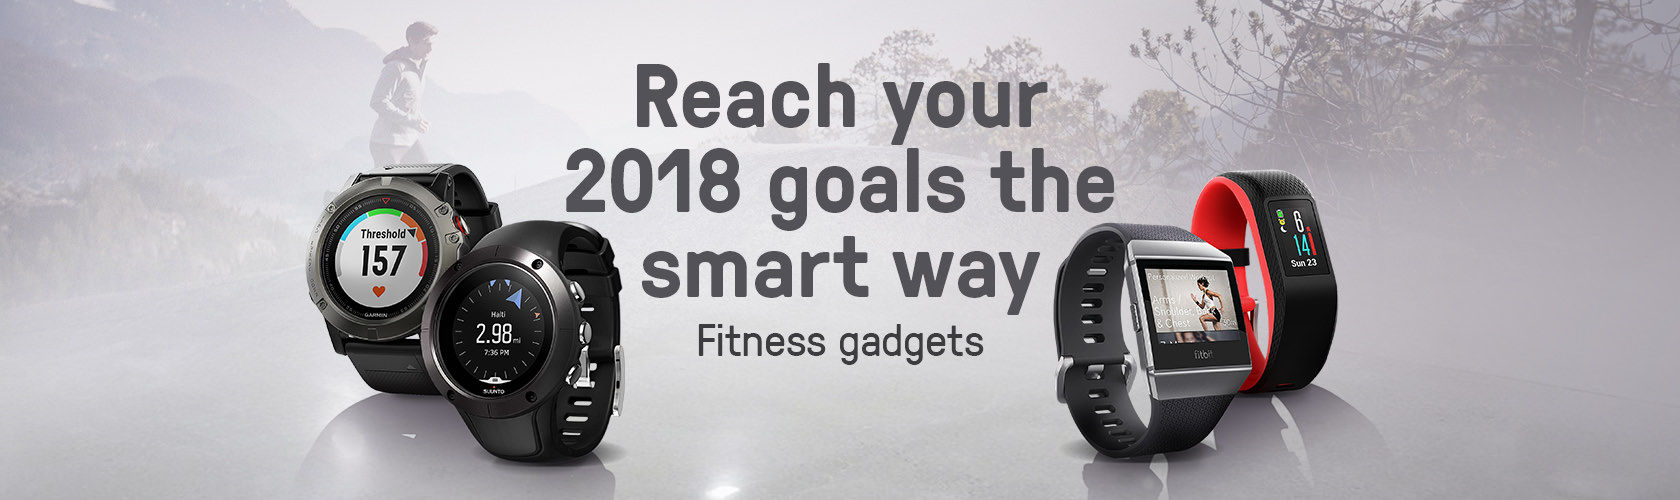 Fitness Gadgets 2018 Promotional Banner